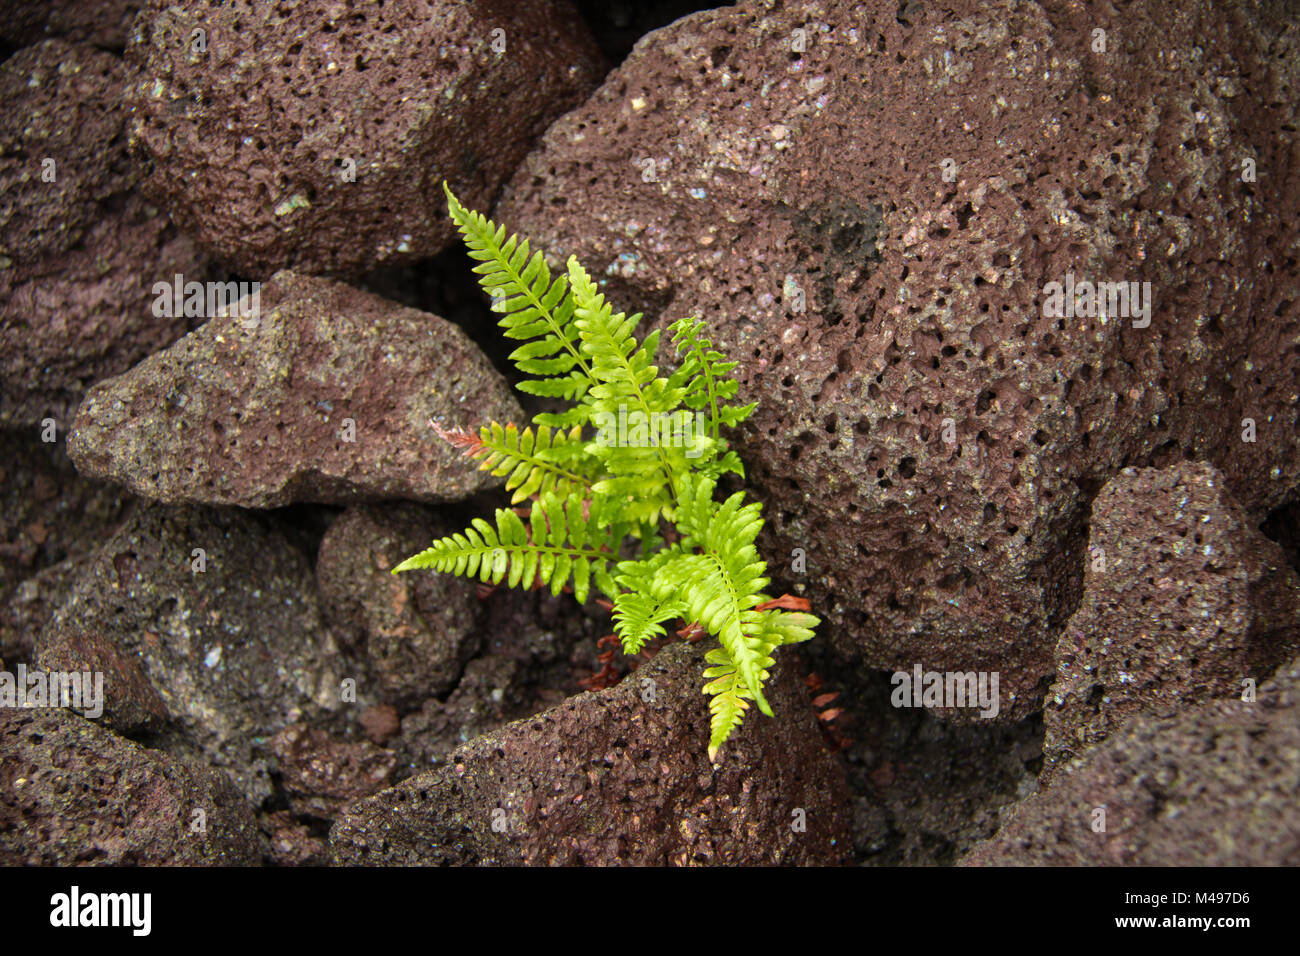 Fern growing in magma rocks - Stock Image